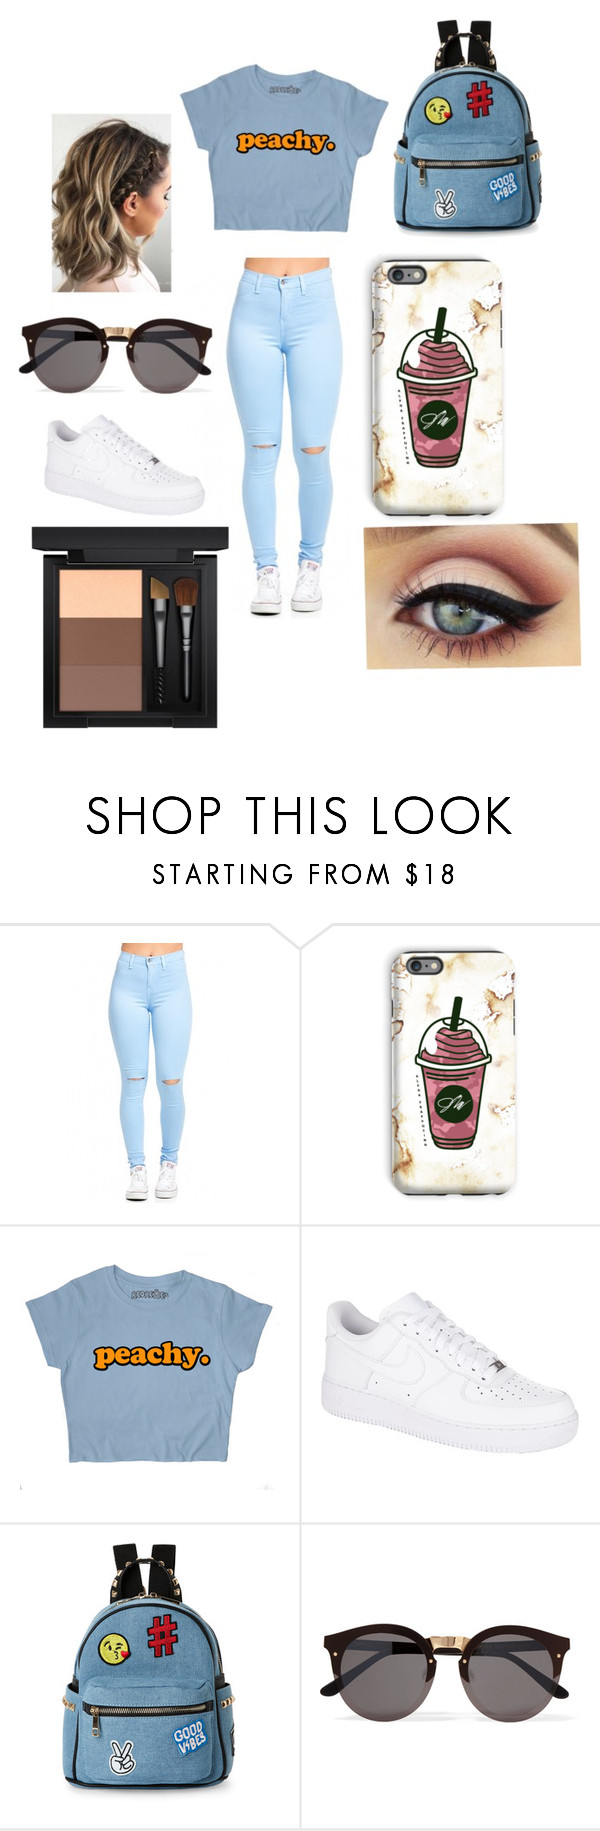 """""""Peachy keen, Peach kleen"""" by joyneely ❤ liked on Polyvore featuring beauty, NIKE, IMoshion, Illesteva, MAC Cosmetics, expressyourself and peachy"""